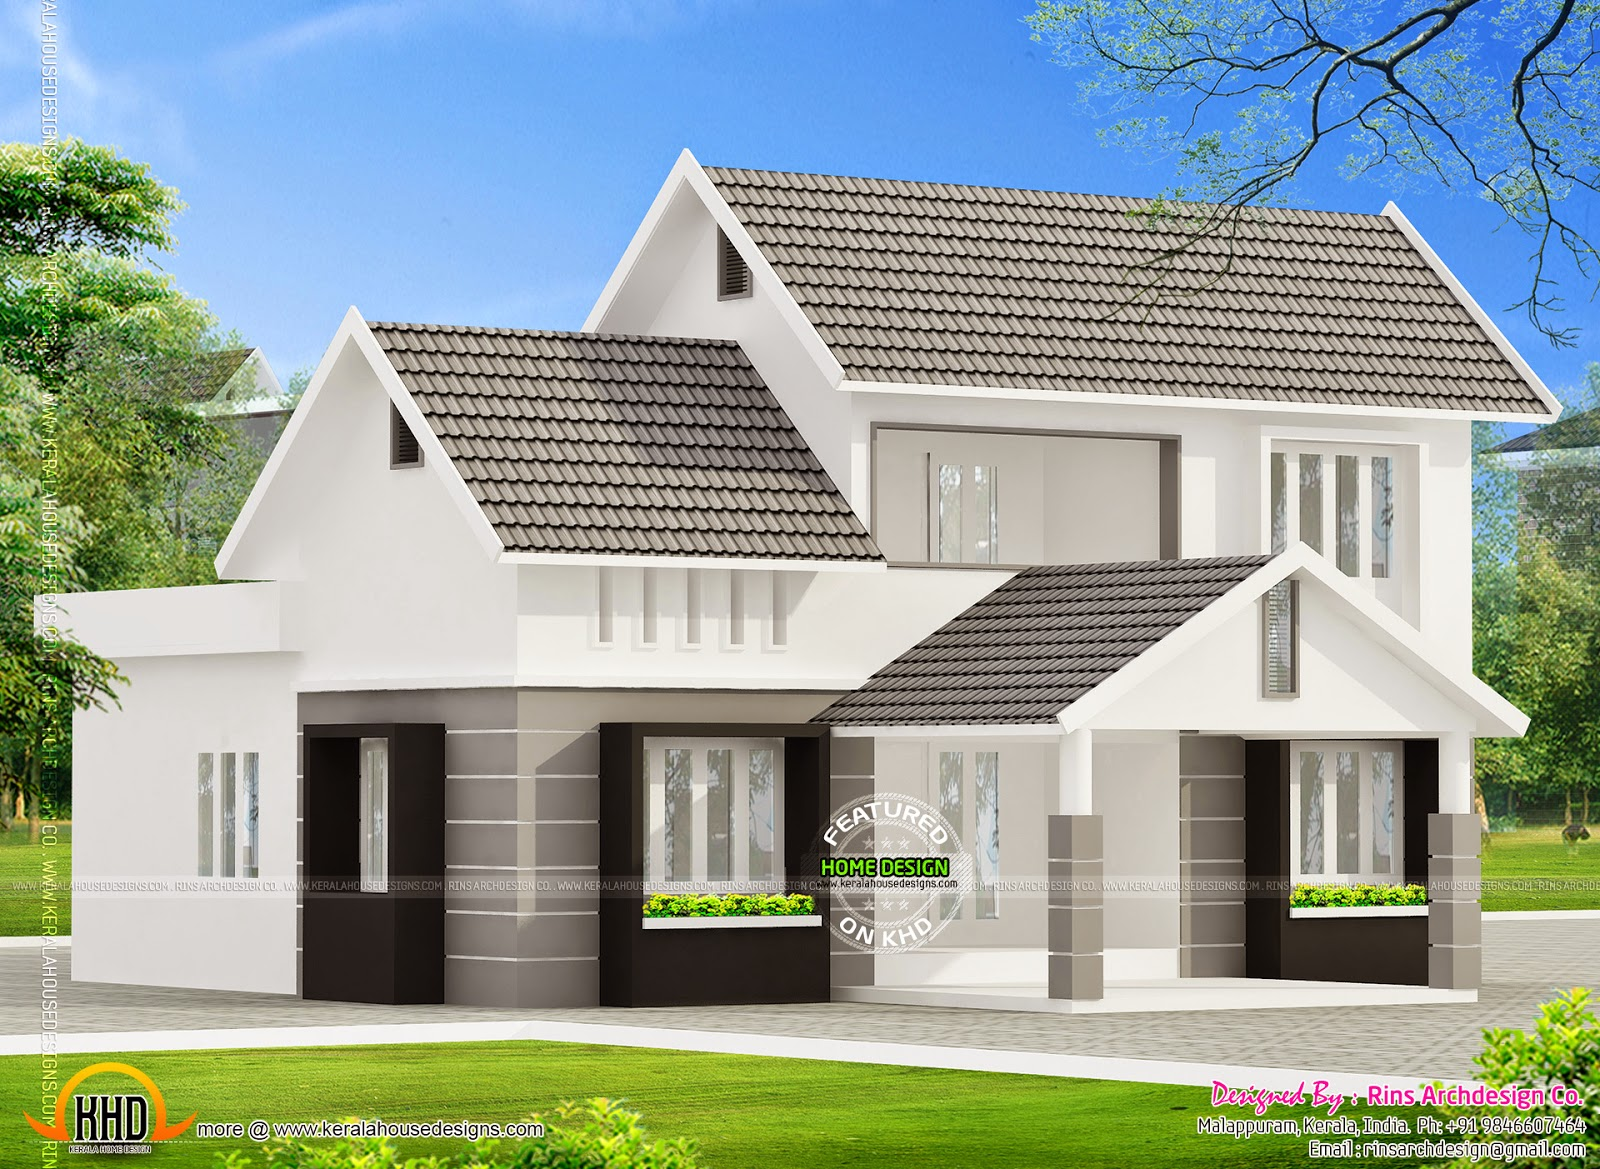 Kerala House Plans 1800 Square Feet